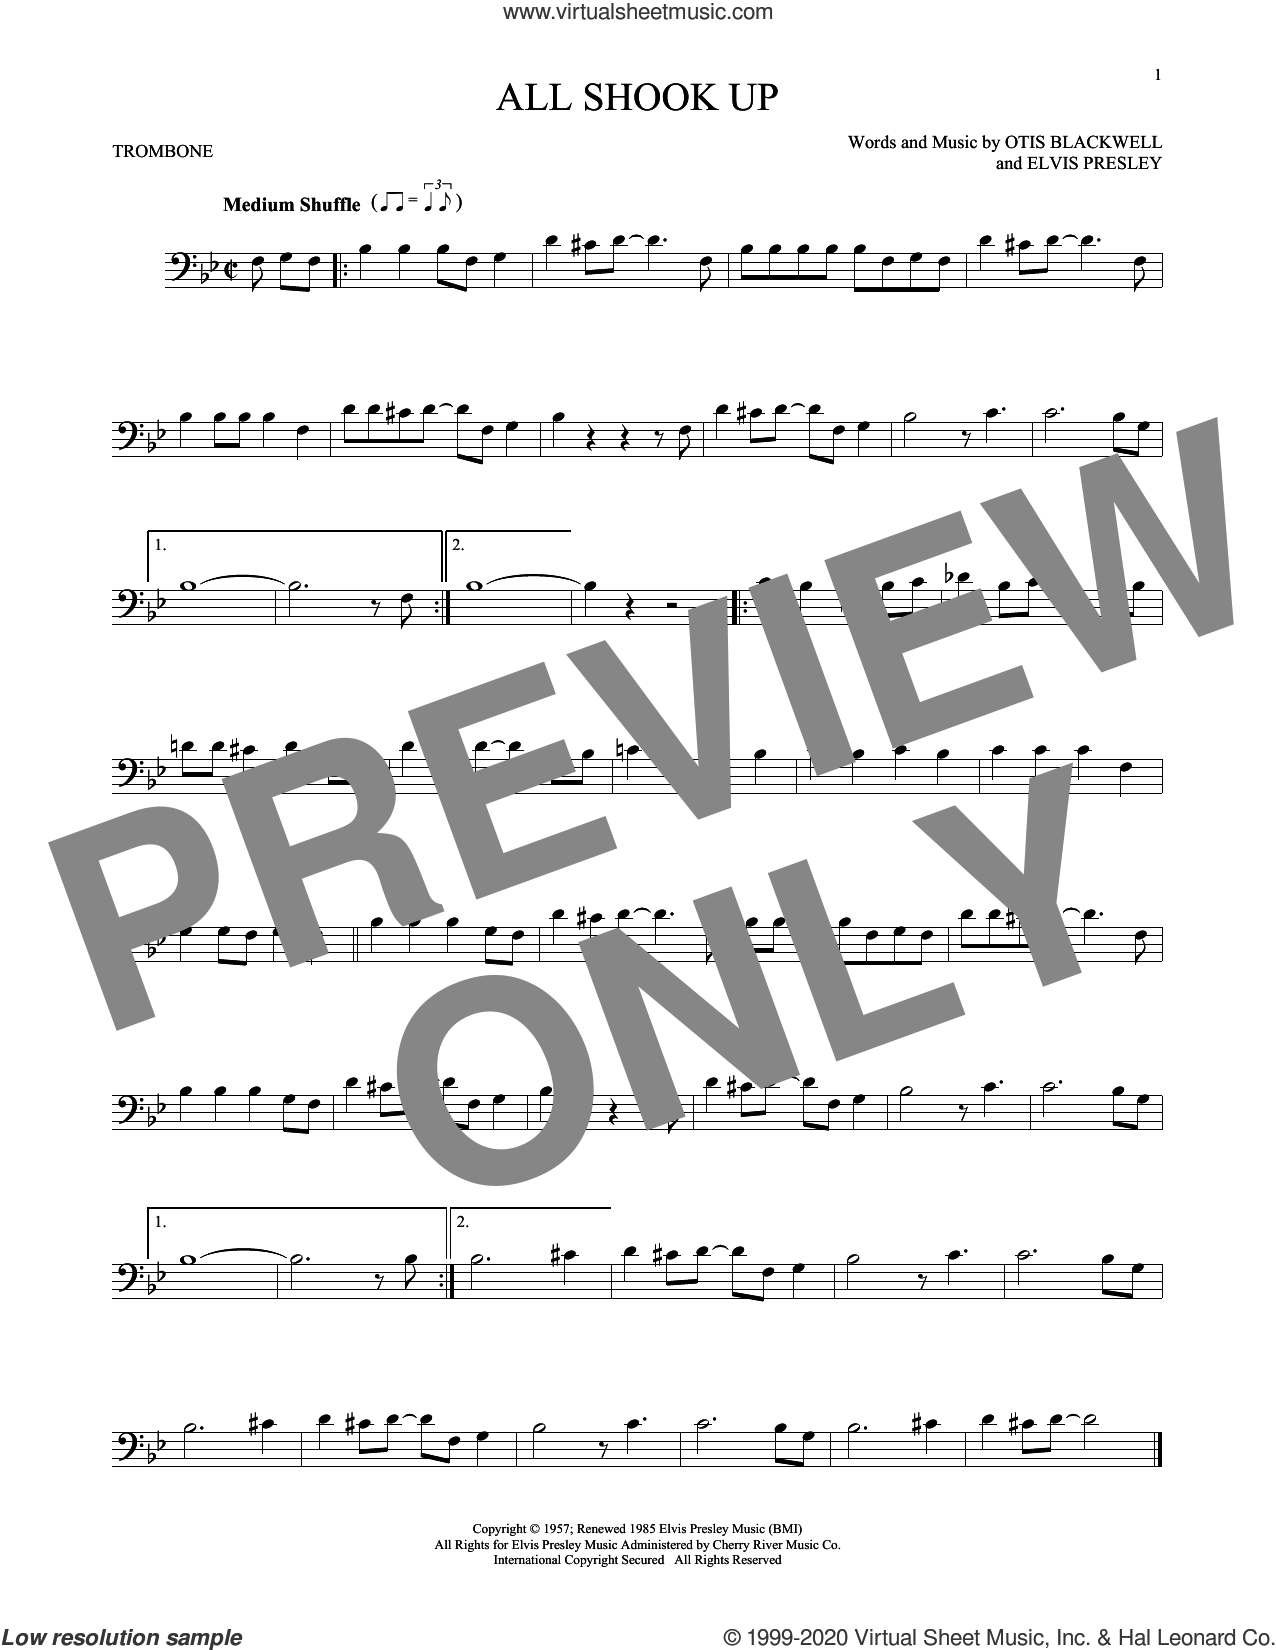 All Shook Up sheet music for trombone solo by Elvis Presley, Suzi Quatro and Otis Blackwell, intermediate skill level